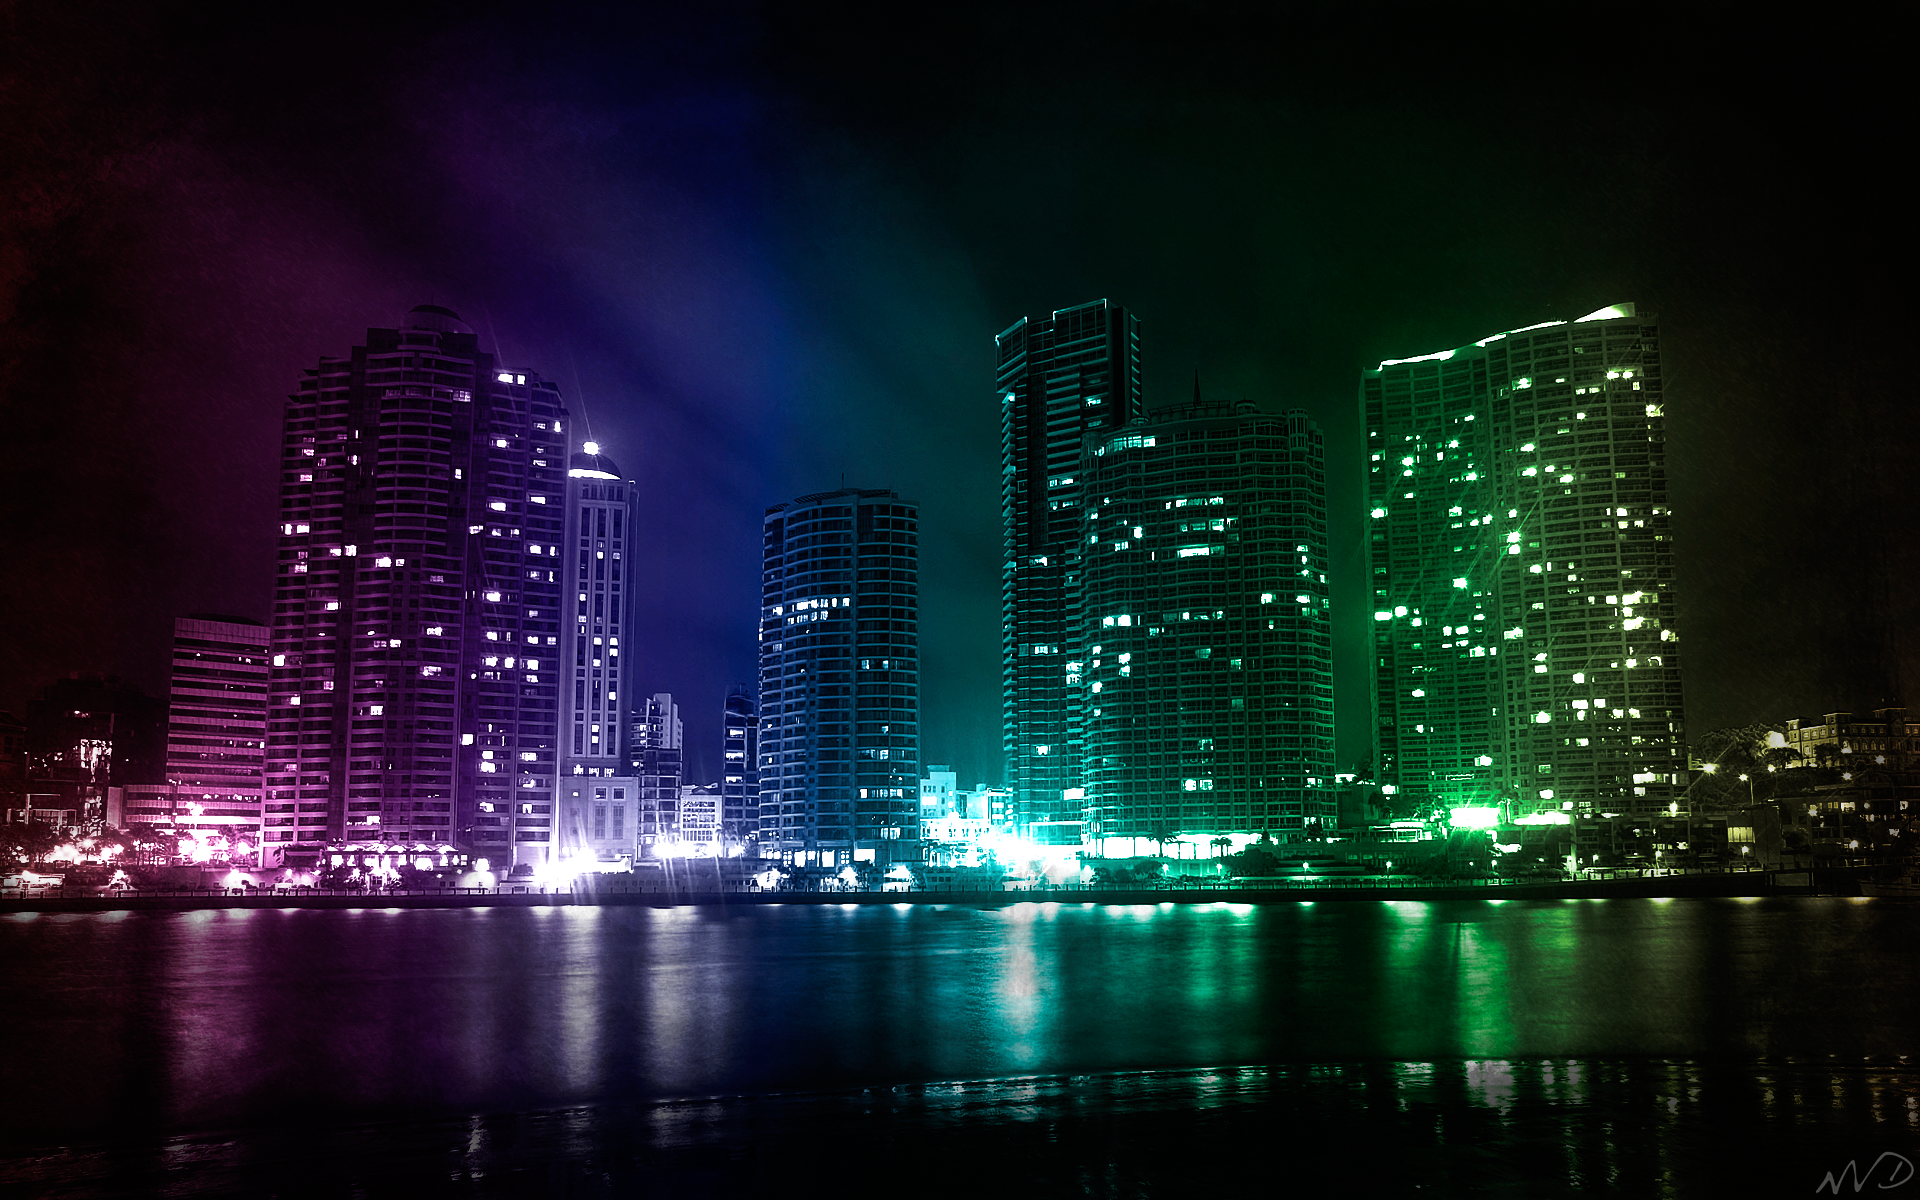 Hd Wallpapers Free city wallpaper